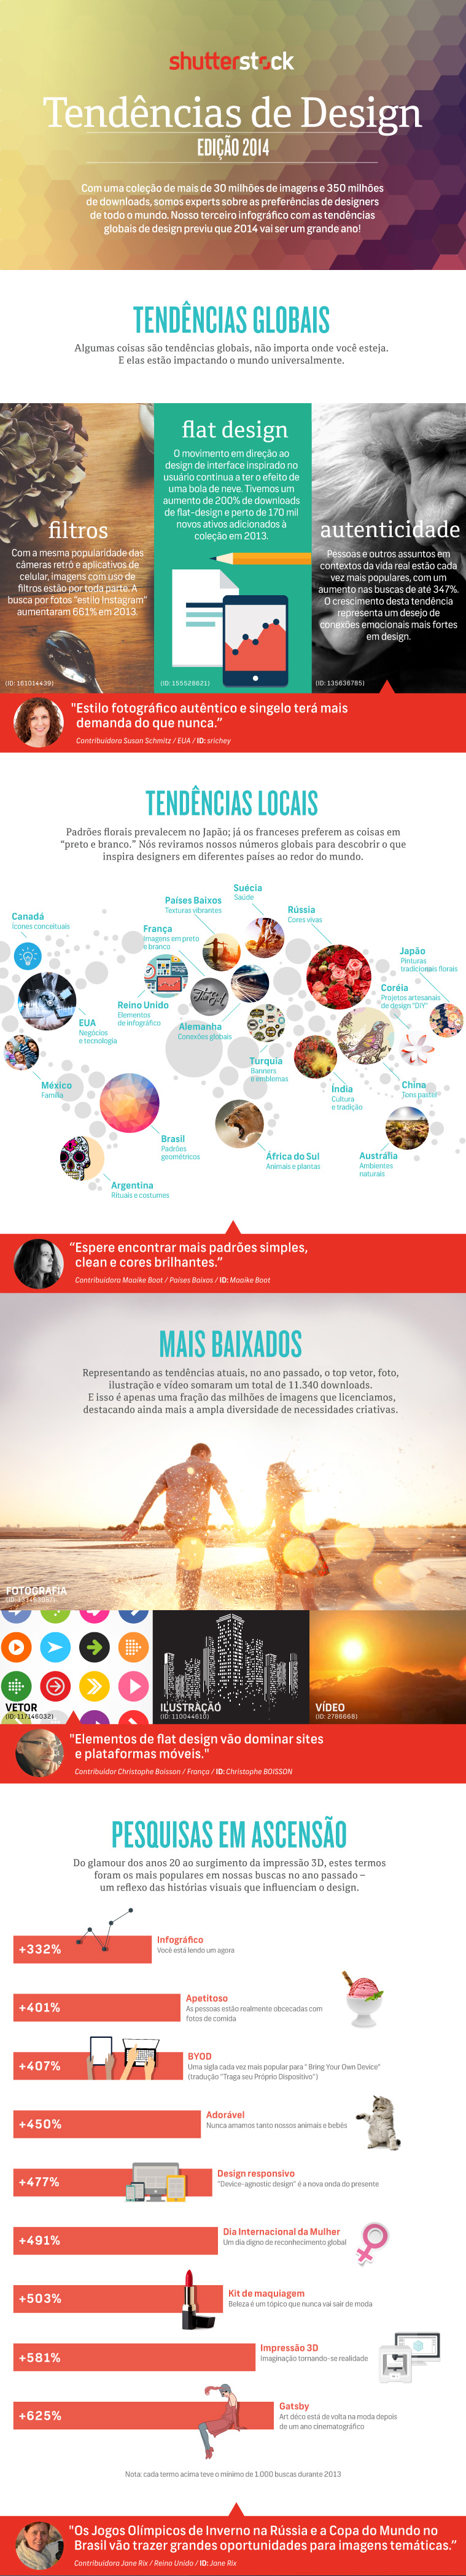 2014-Infographic-parte-1